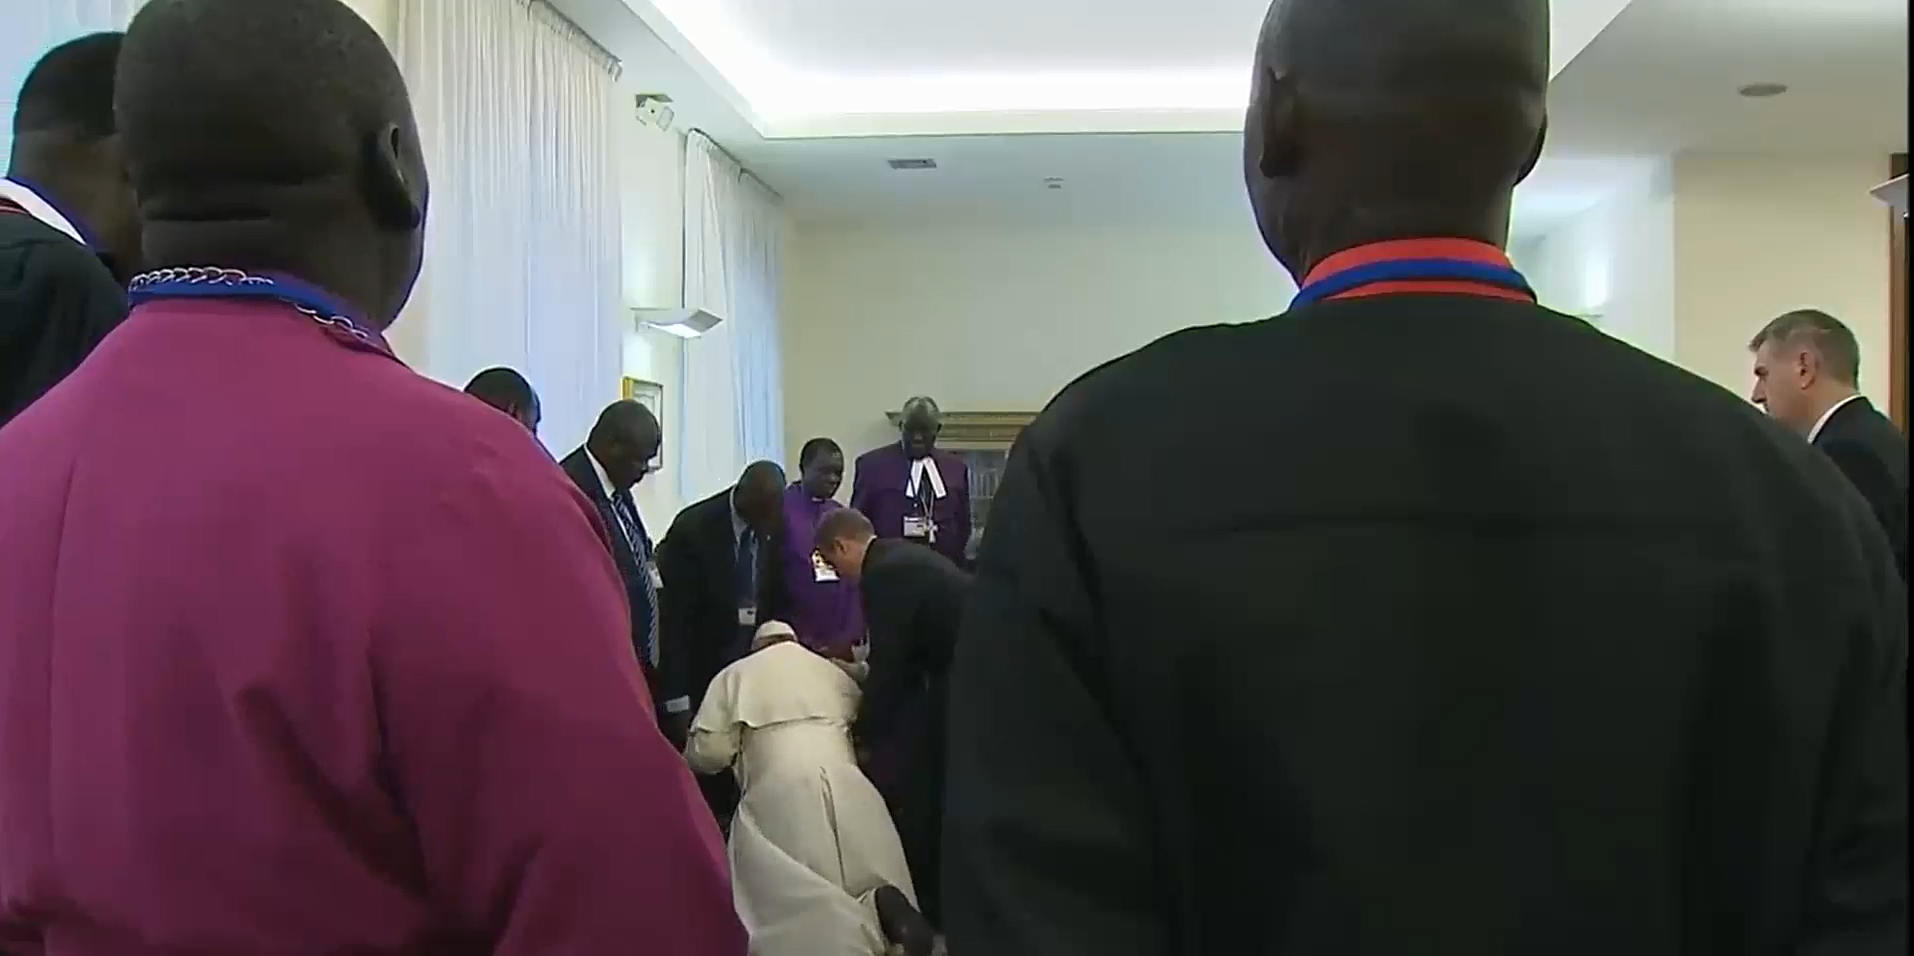 Pope Francis kisses the feet of a Sudanese peace delegate as a crowd looks on.